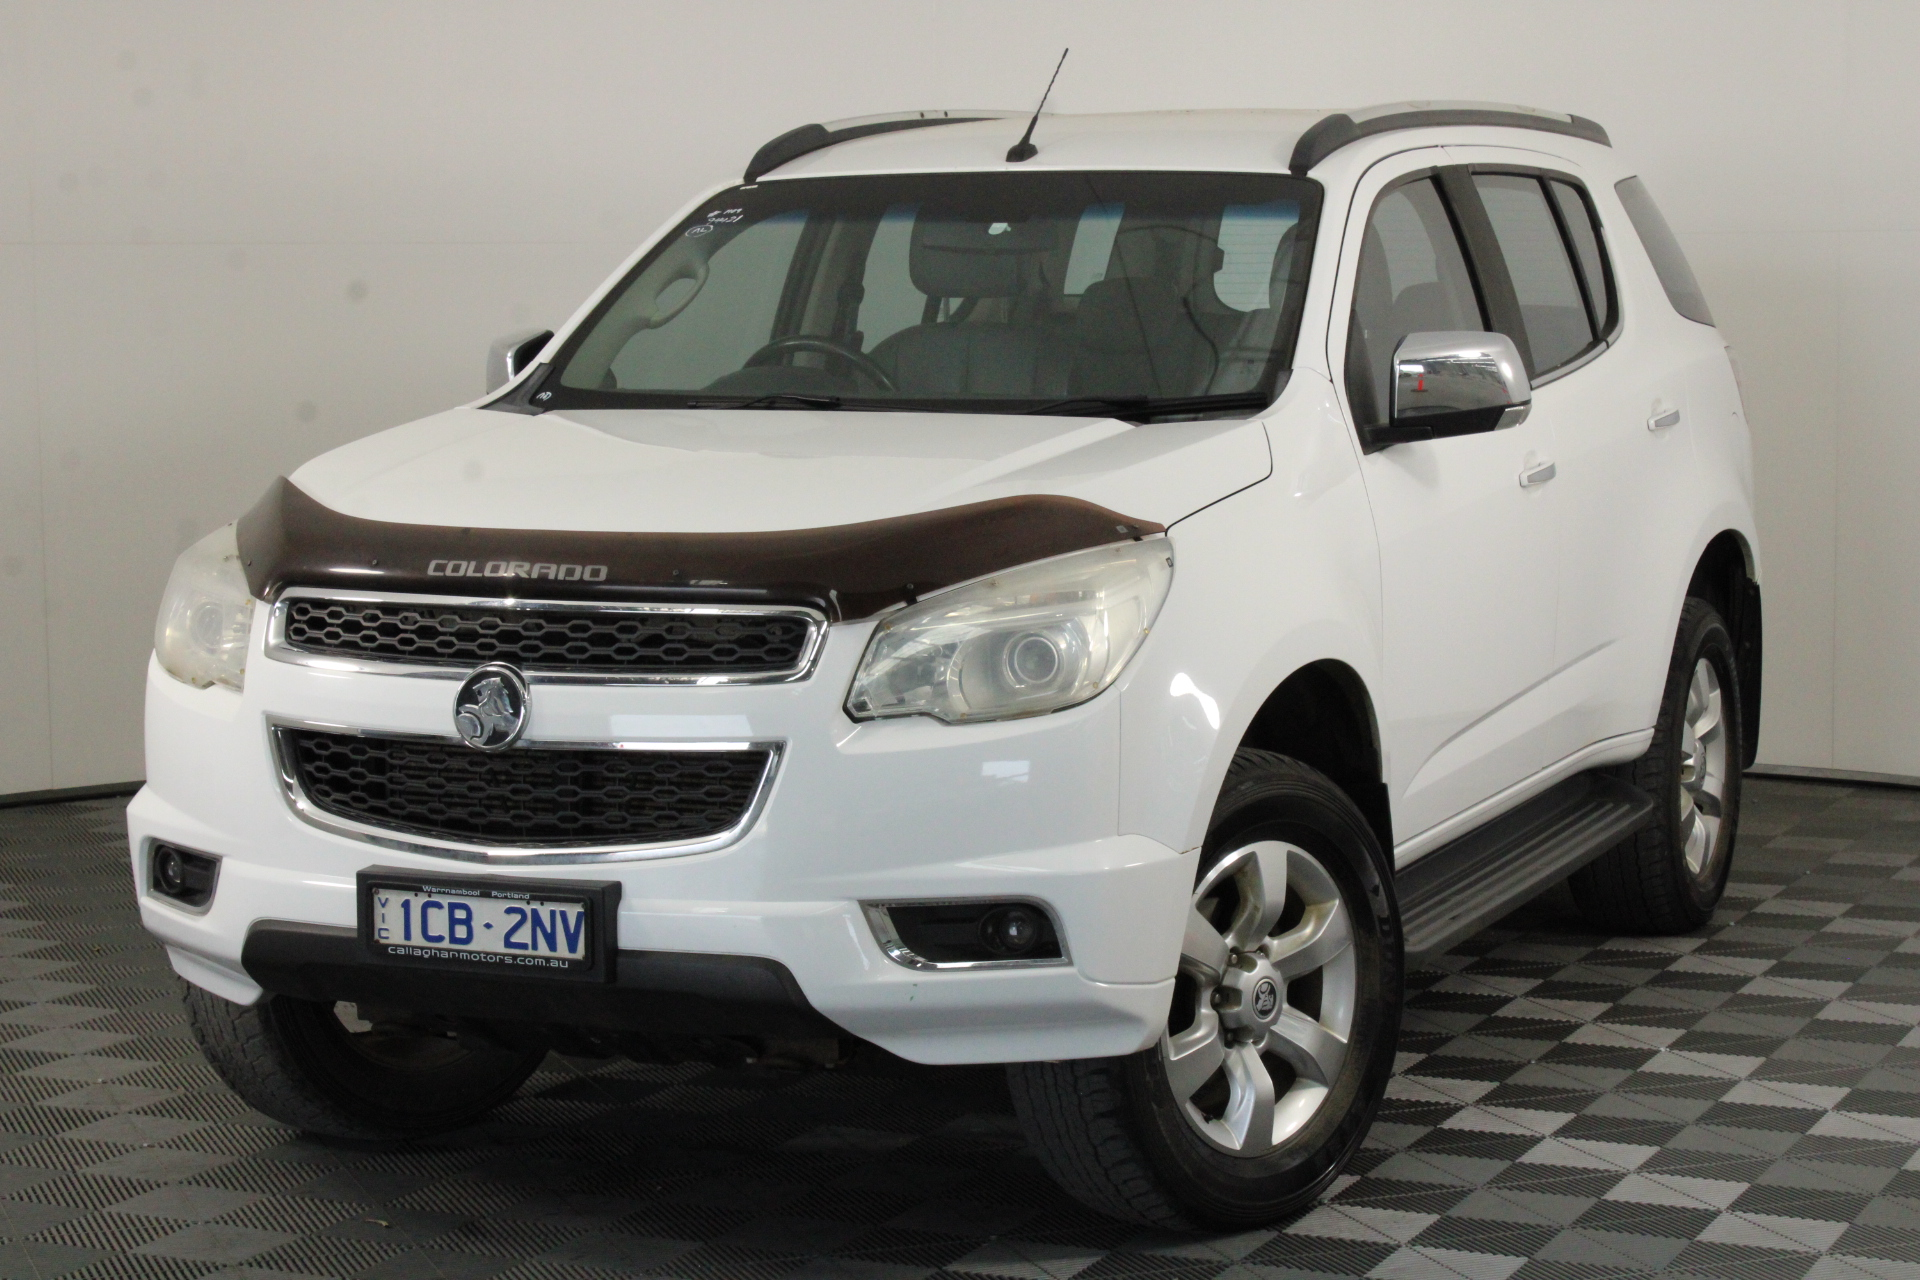 2015 Holden Colorado 7 LTZ RG Turbo Diesel Automatic 7 Seats Wagon